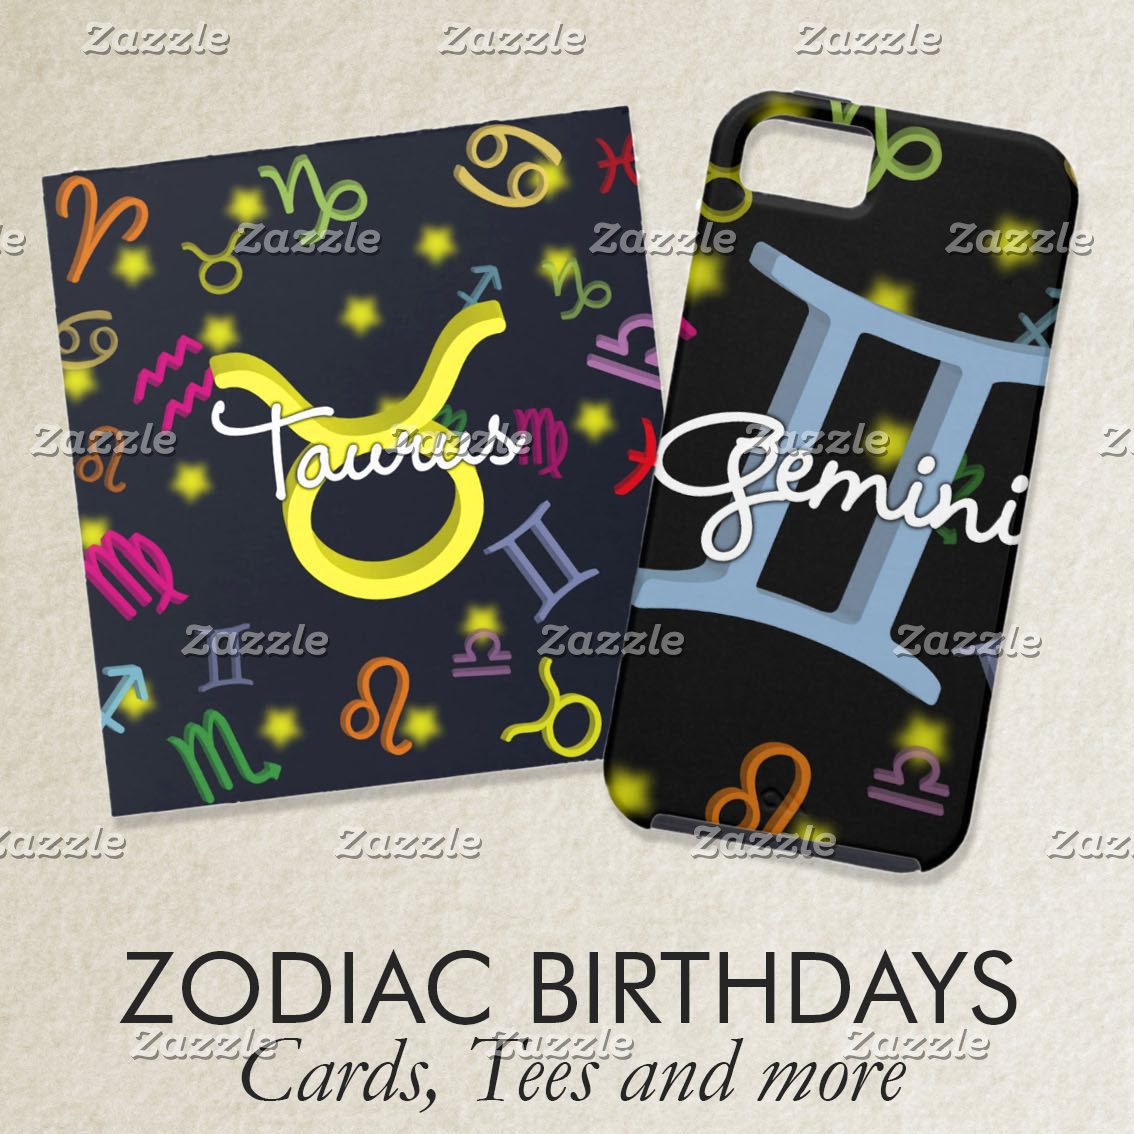 Zodiac Birthdays